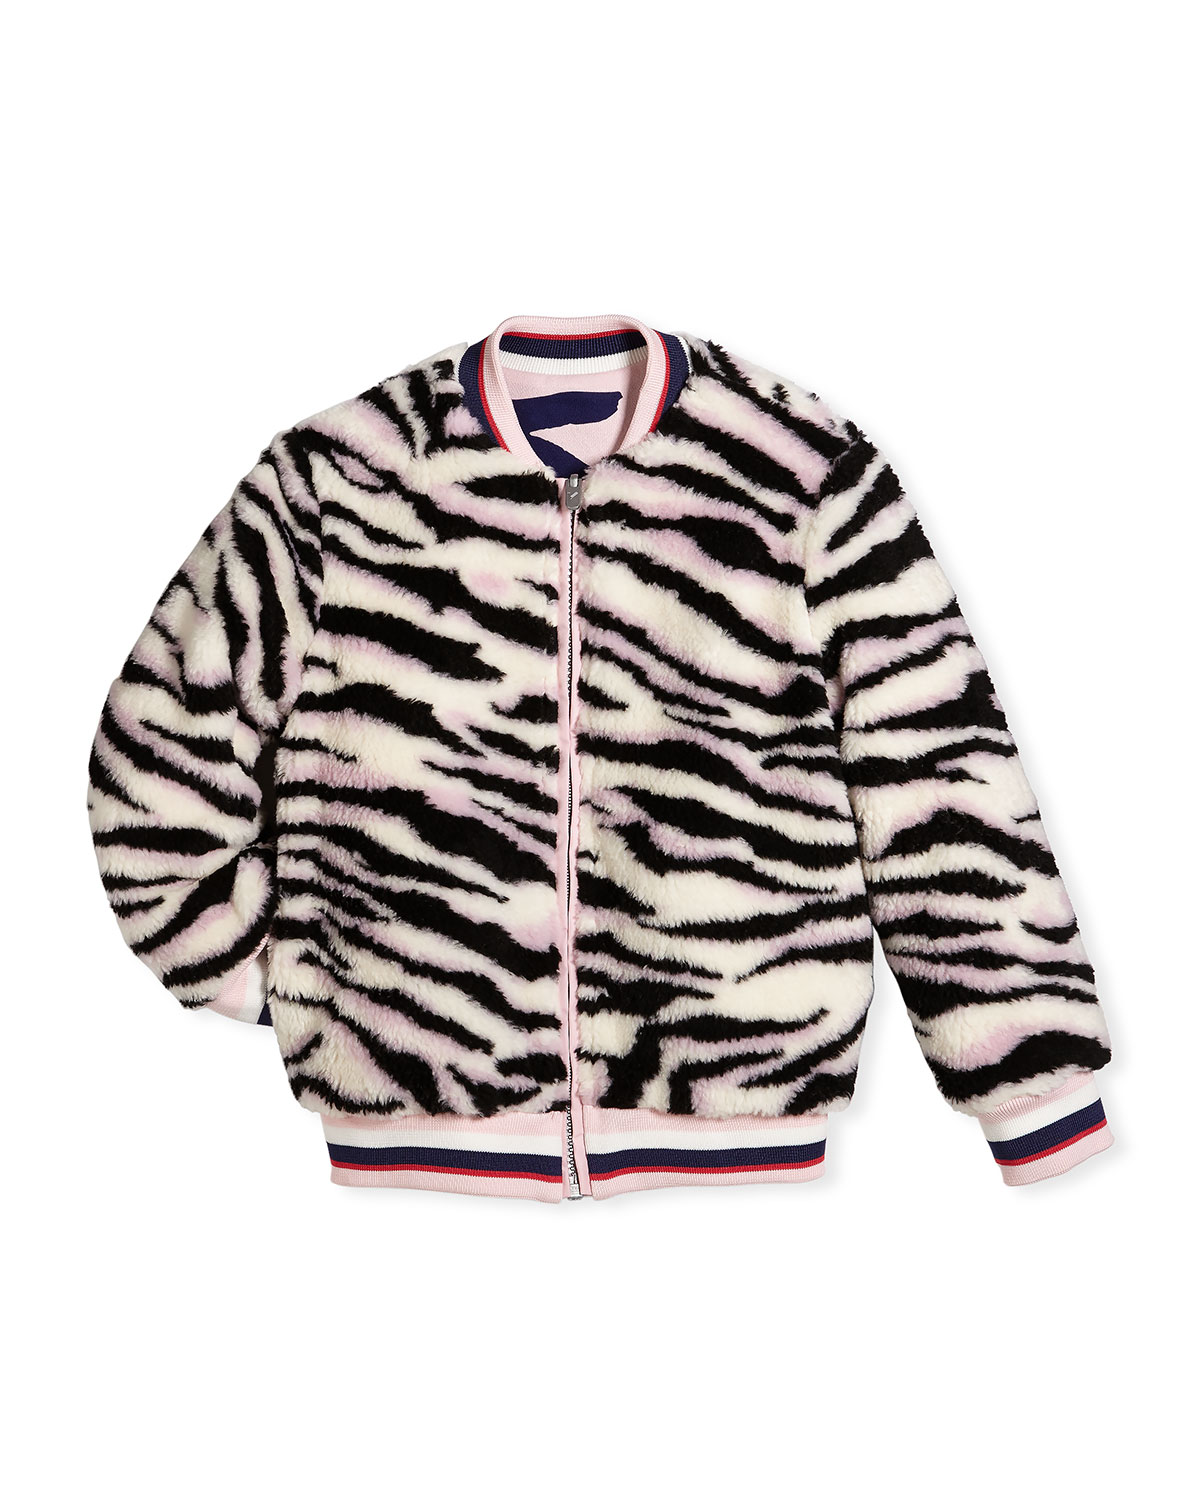 Reversible Faux-Fur Zebra Print Jacket, Size 14-16